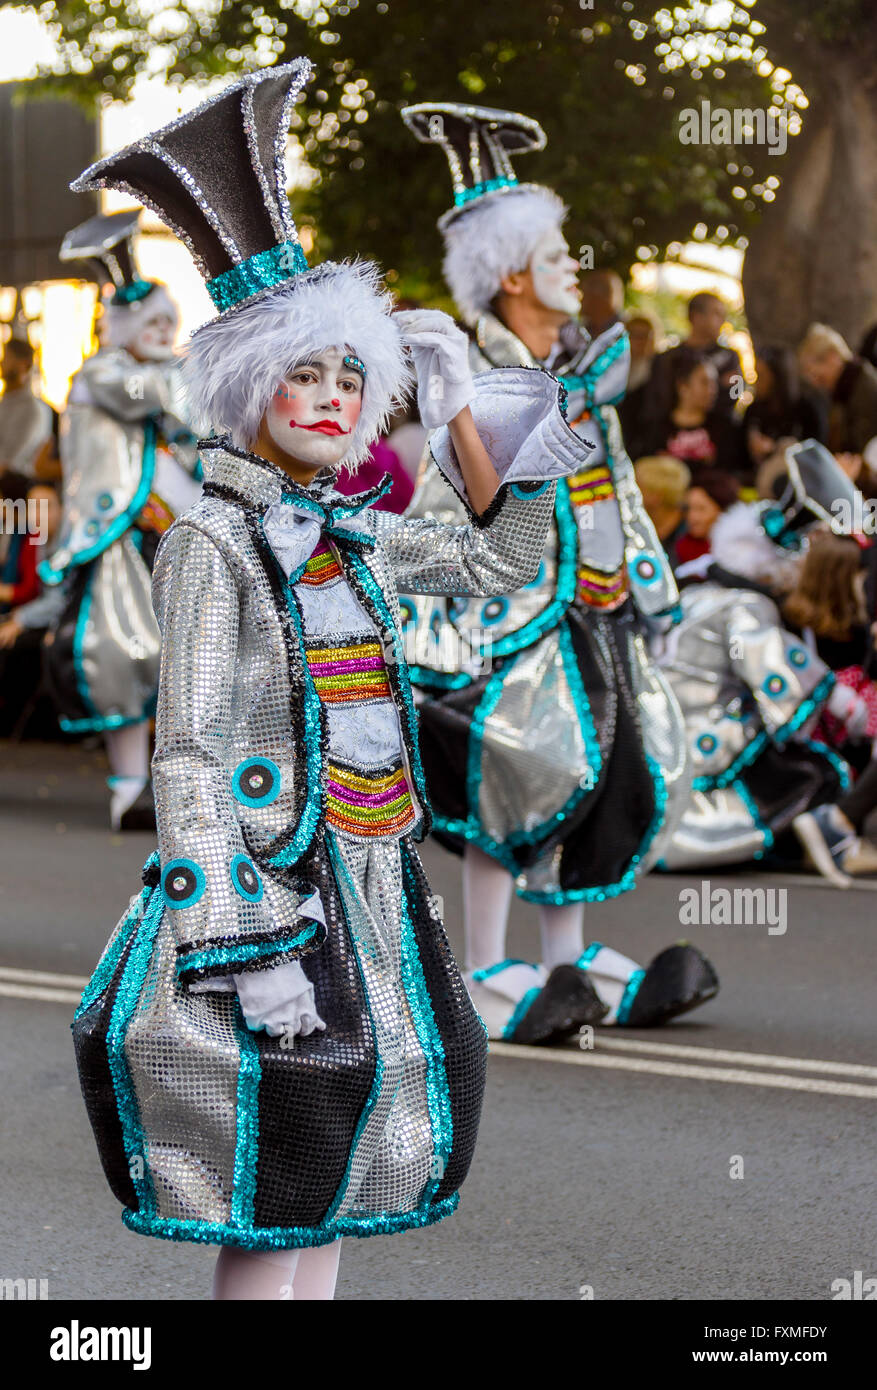 Woman in elaborate clown costume, Carnival Procession, Santa Cruz, Tenerife - Stock Image